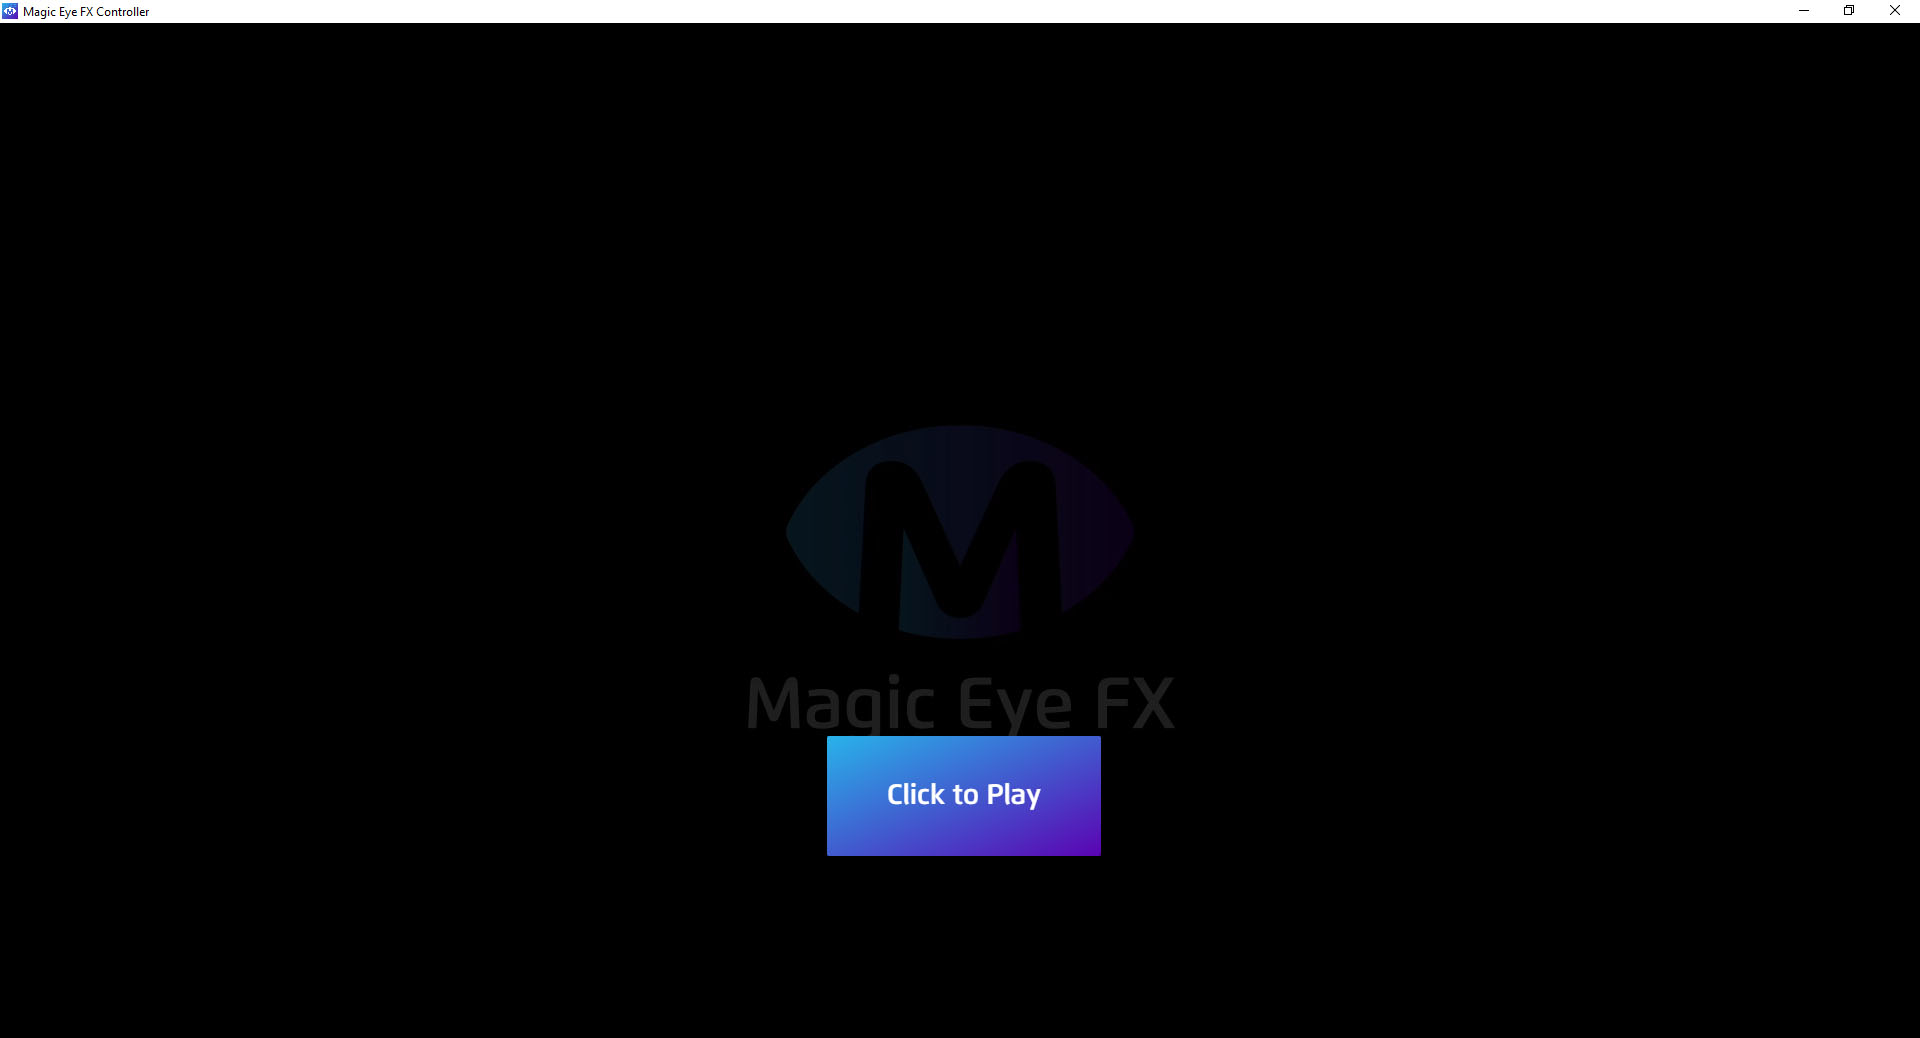 Magic Eye FX Software Click to Play